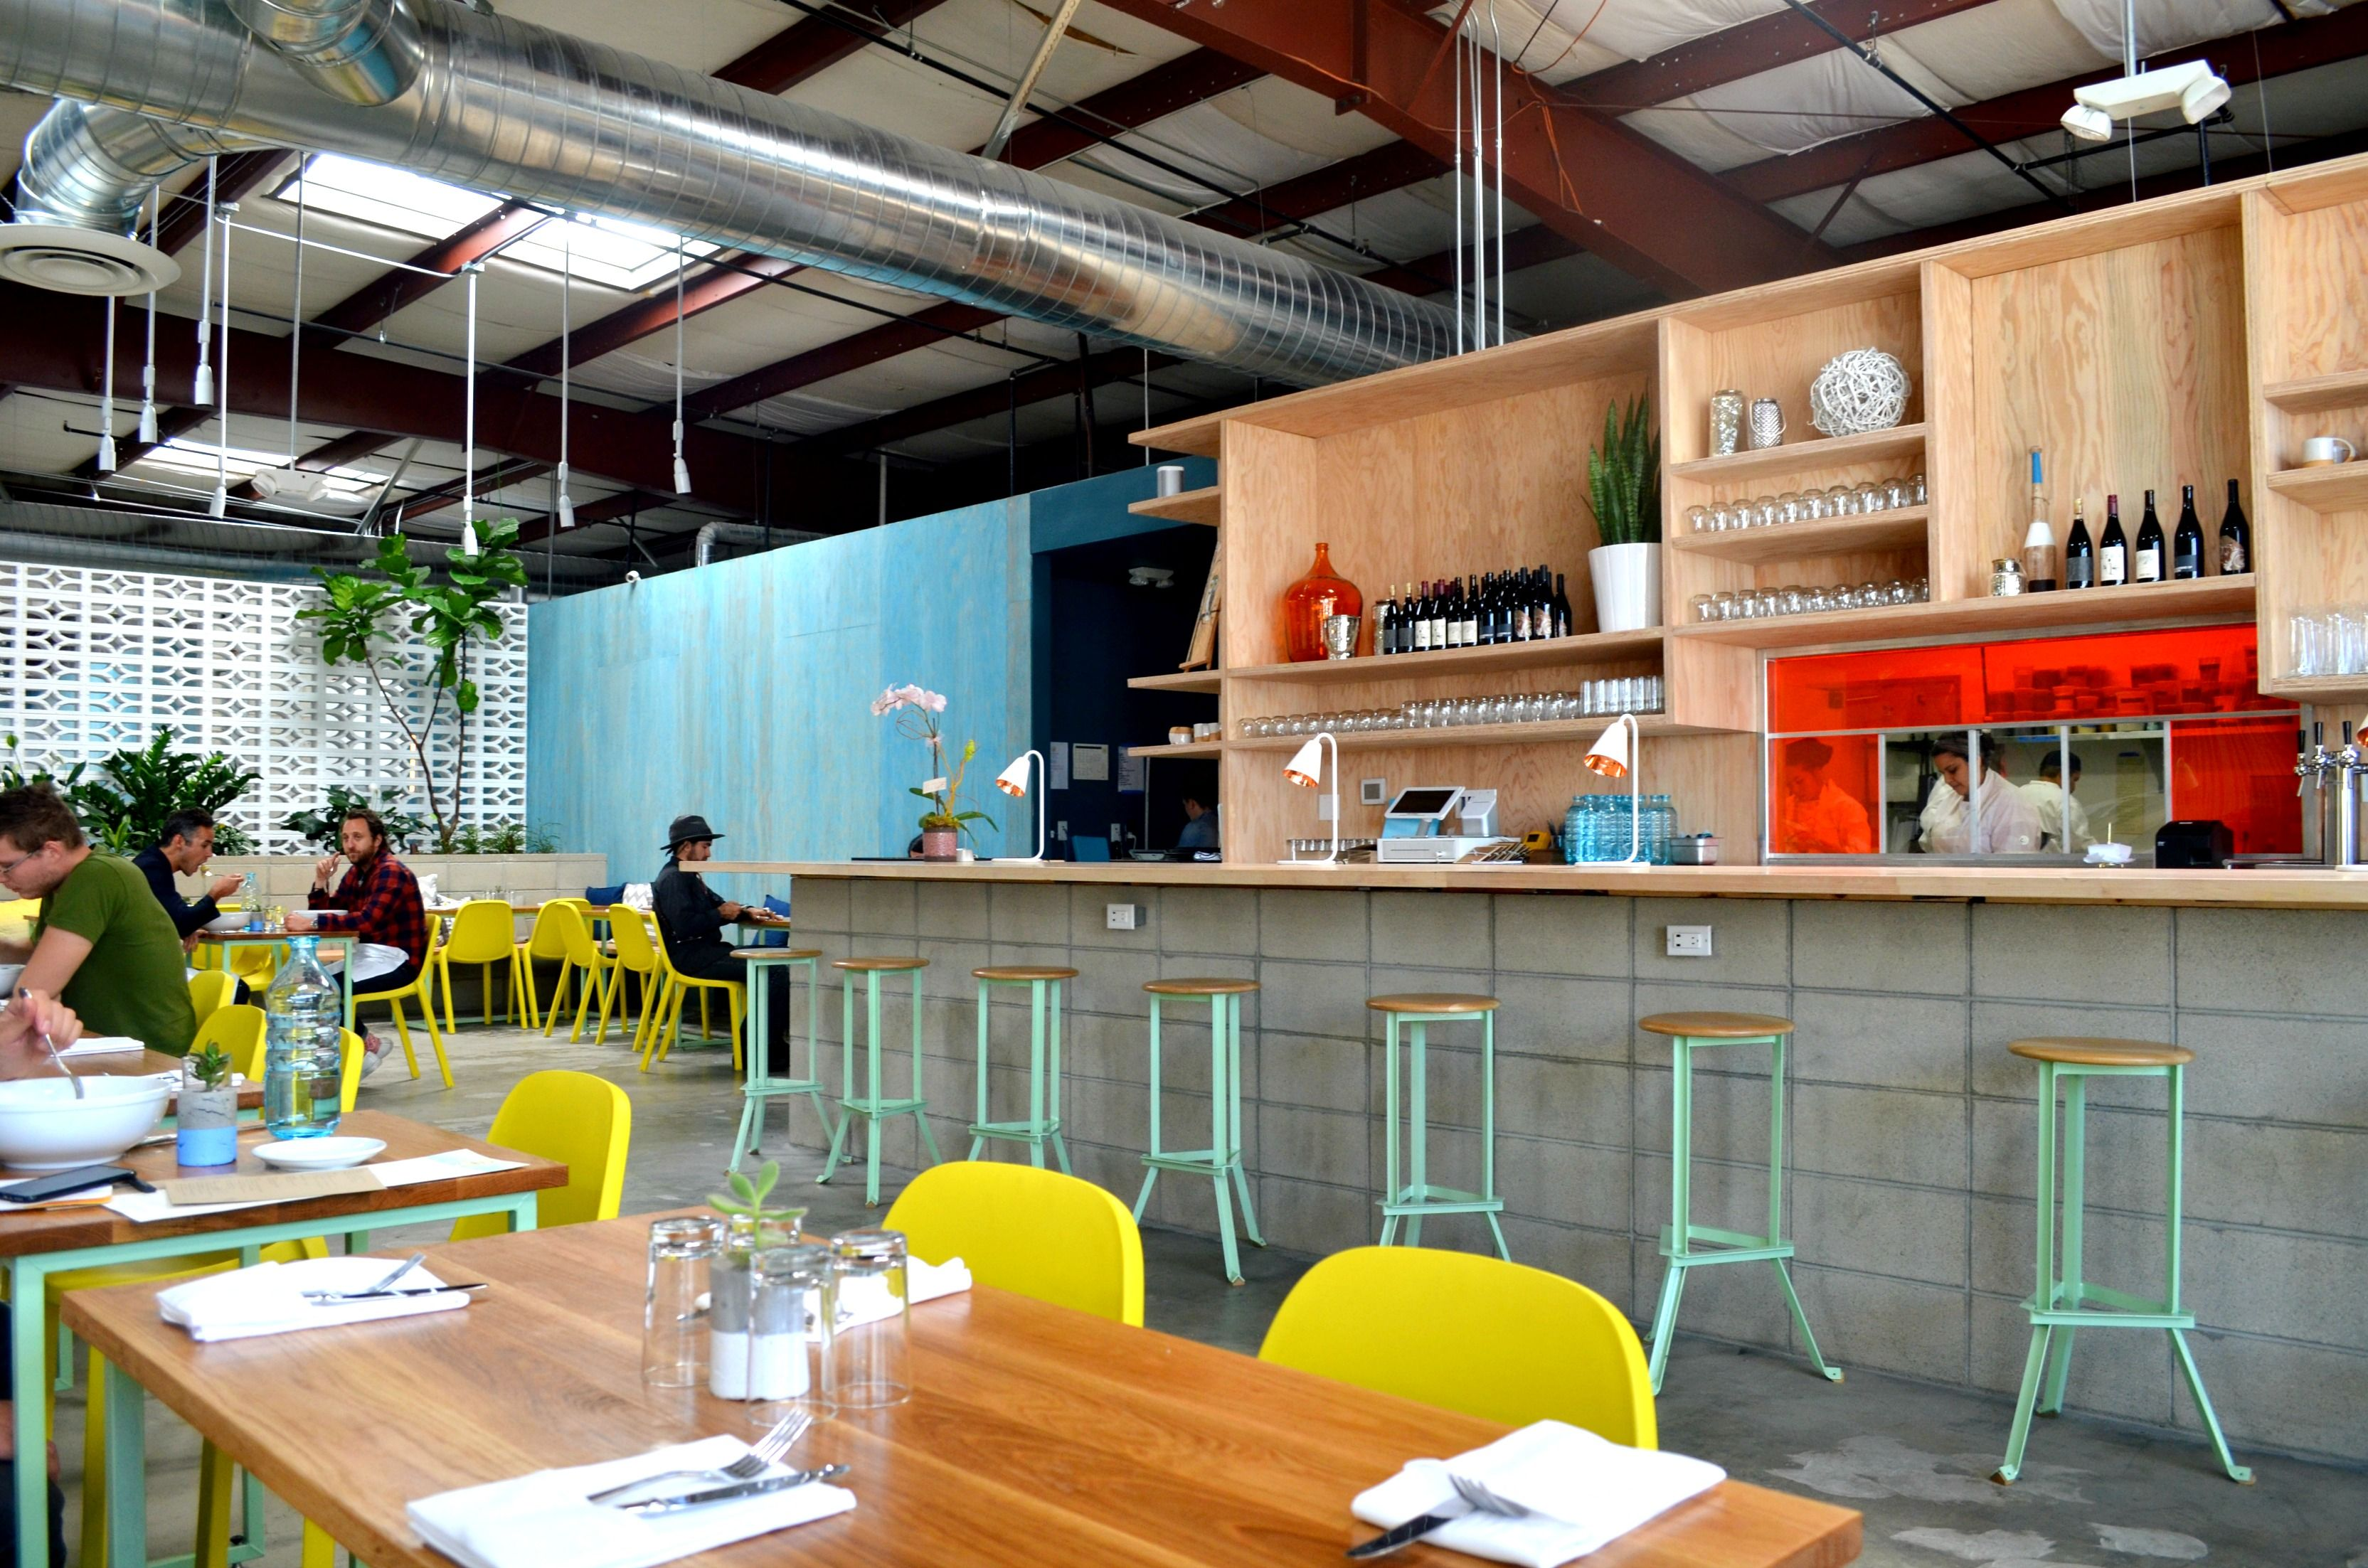 We Just Booked Our Tickets And Are So Thrilled To Be In La For The Shopup In Less Than A Month I Bar Restaurant Interior Colorful Restaurant Restaurant Design